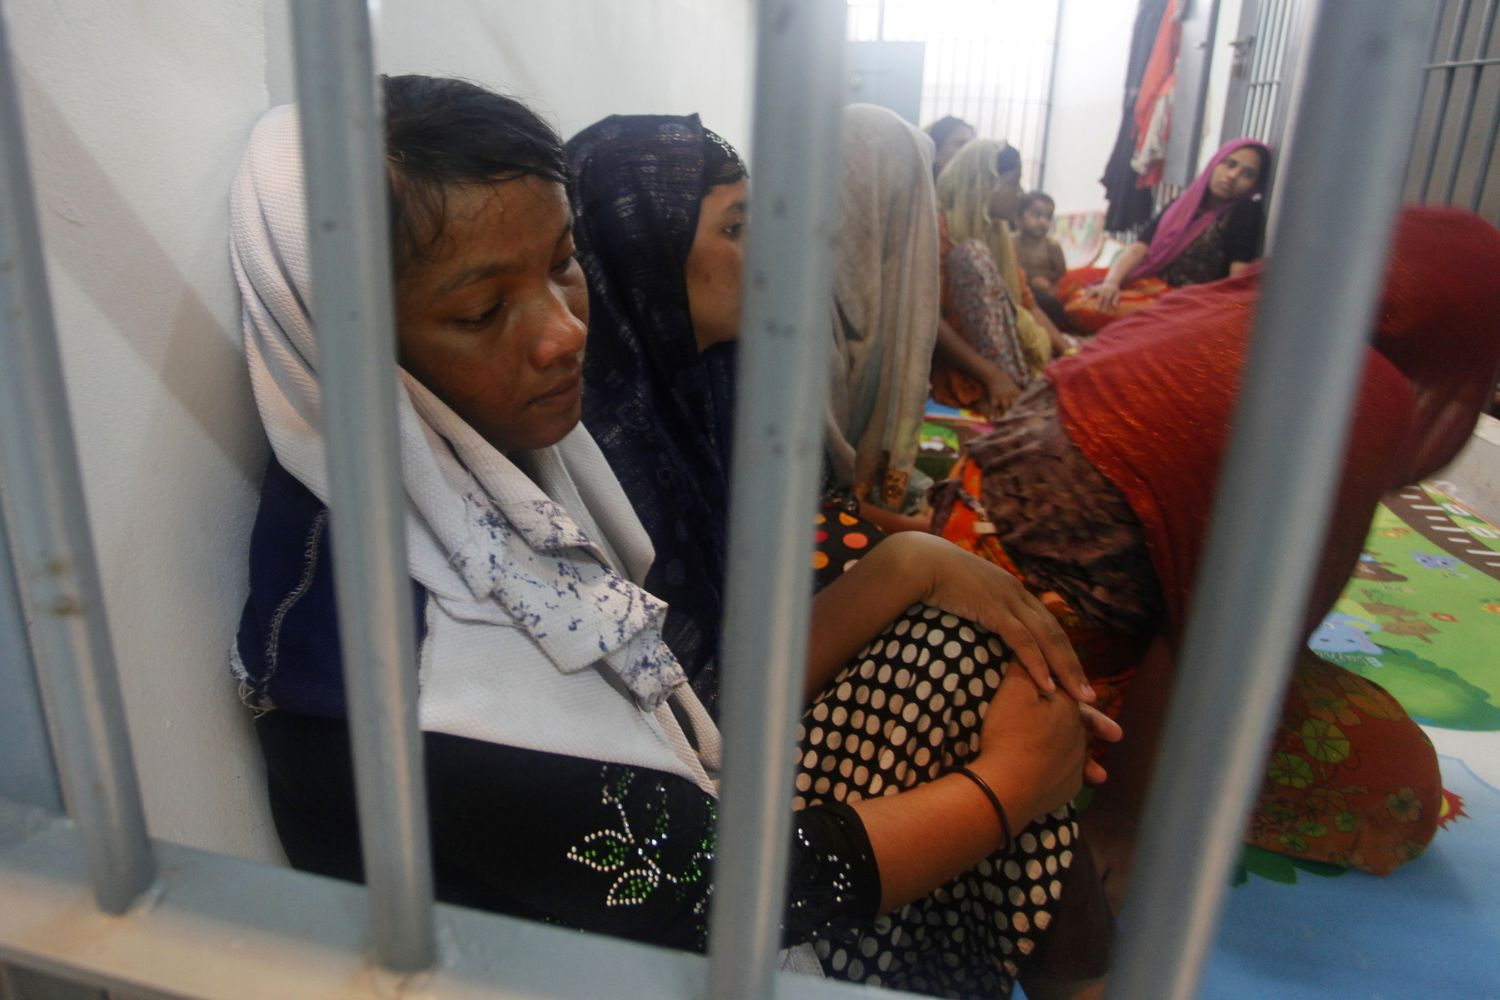 In this June 12, 2019 file photo, Rohingya refugees sit behind bars at a police station in Satun province after Thai officials say they have discovered 65 ethnic Rohingya Muslim refugees who were shipwrecked and stranded in southern Thailand. (AP photo)